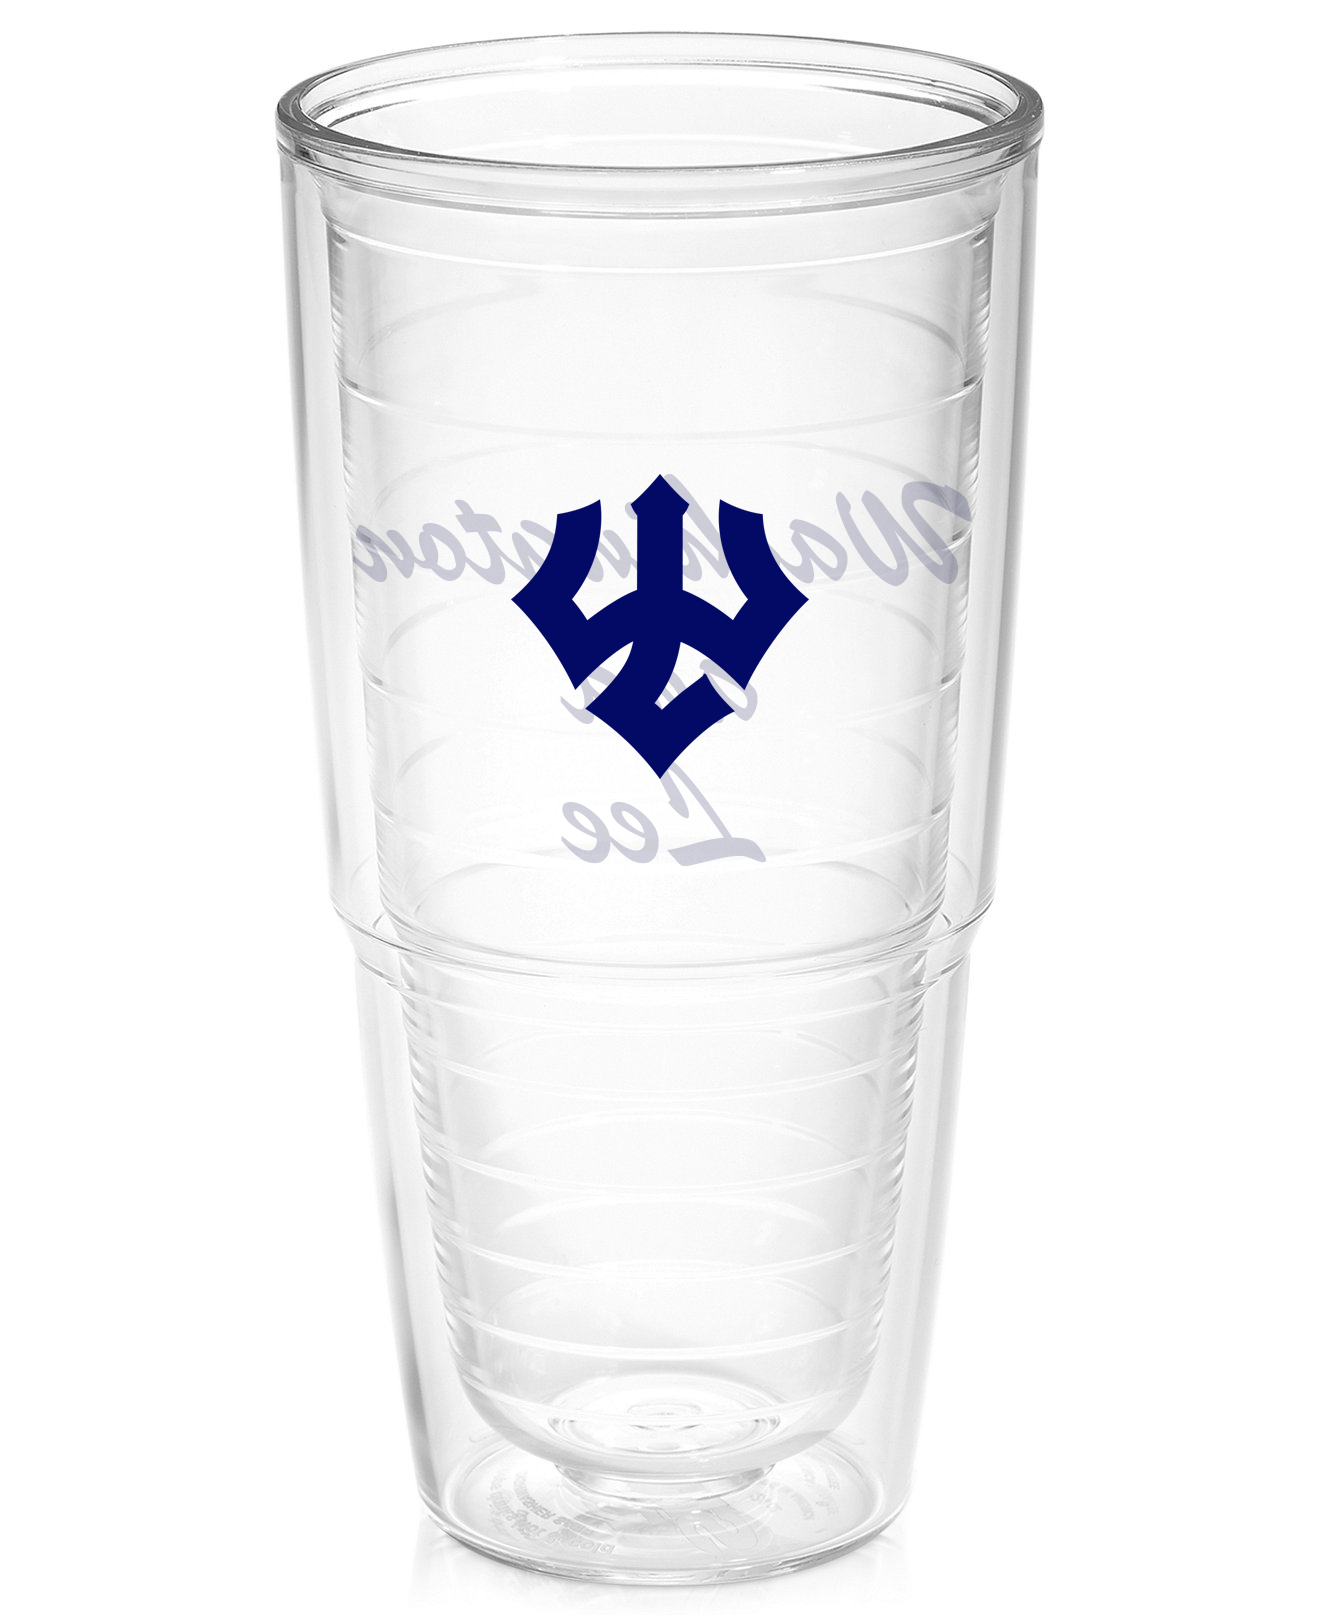 Image For Tervis Tumbler with Trident and Name 24 oz